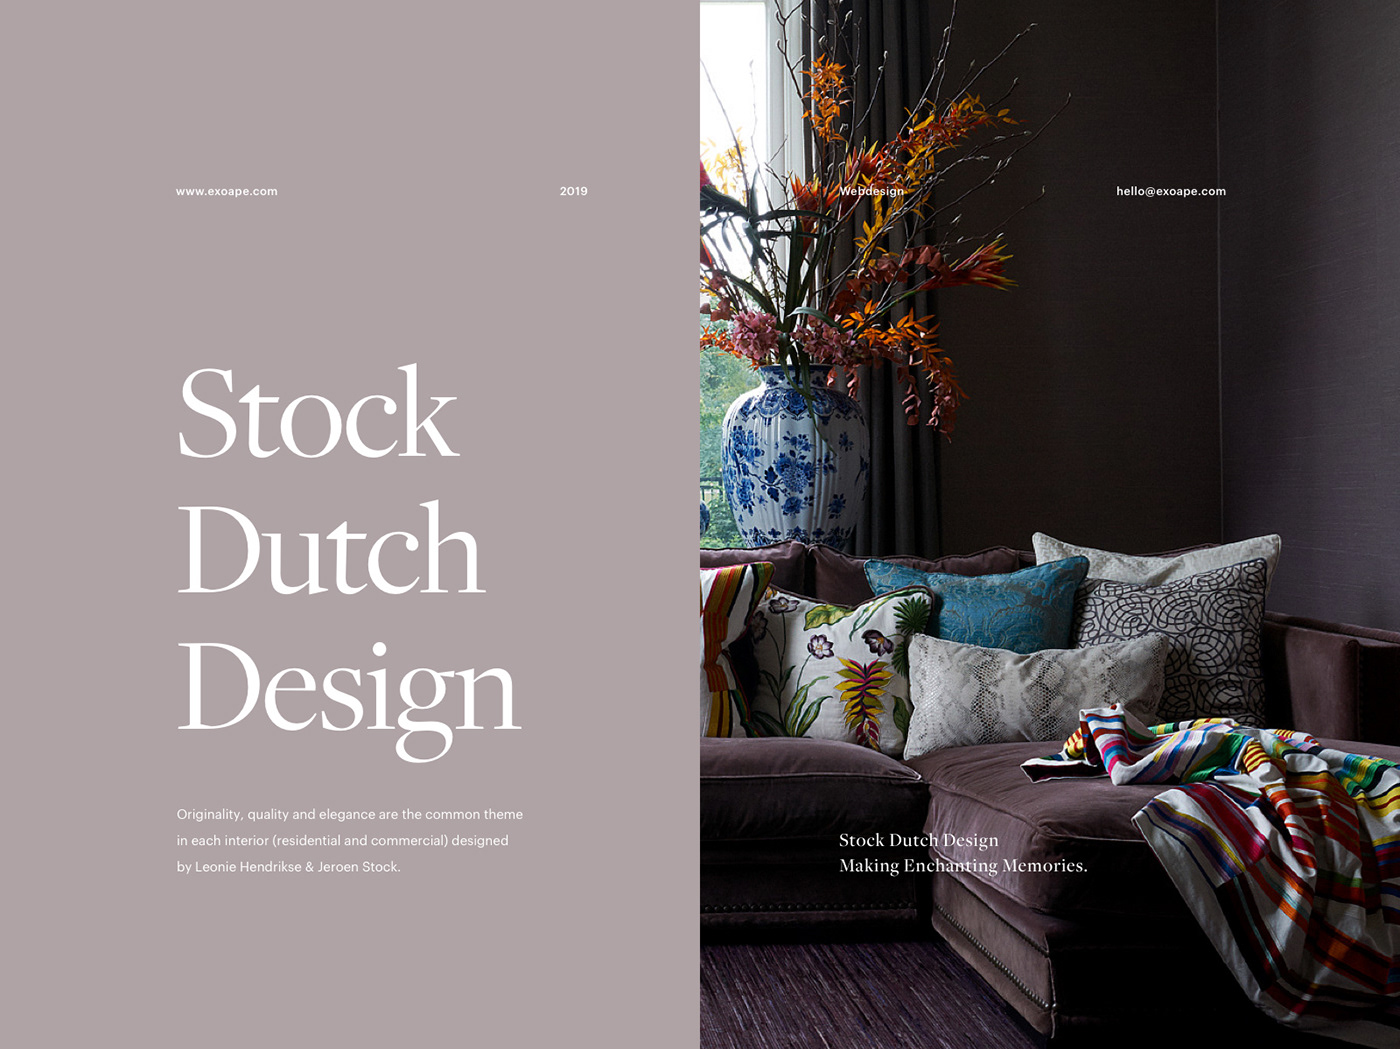 header introduction image about the interior design company named Stock Dutch Design